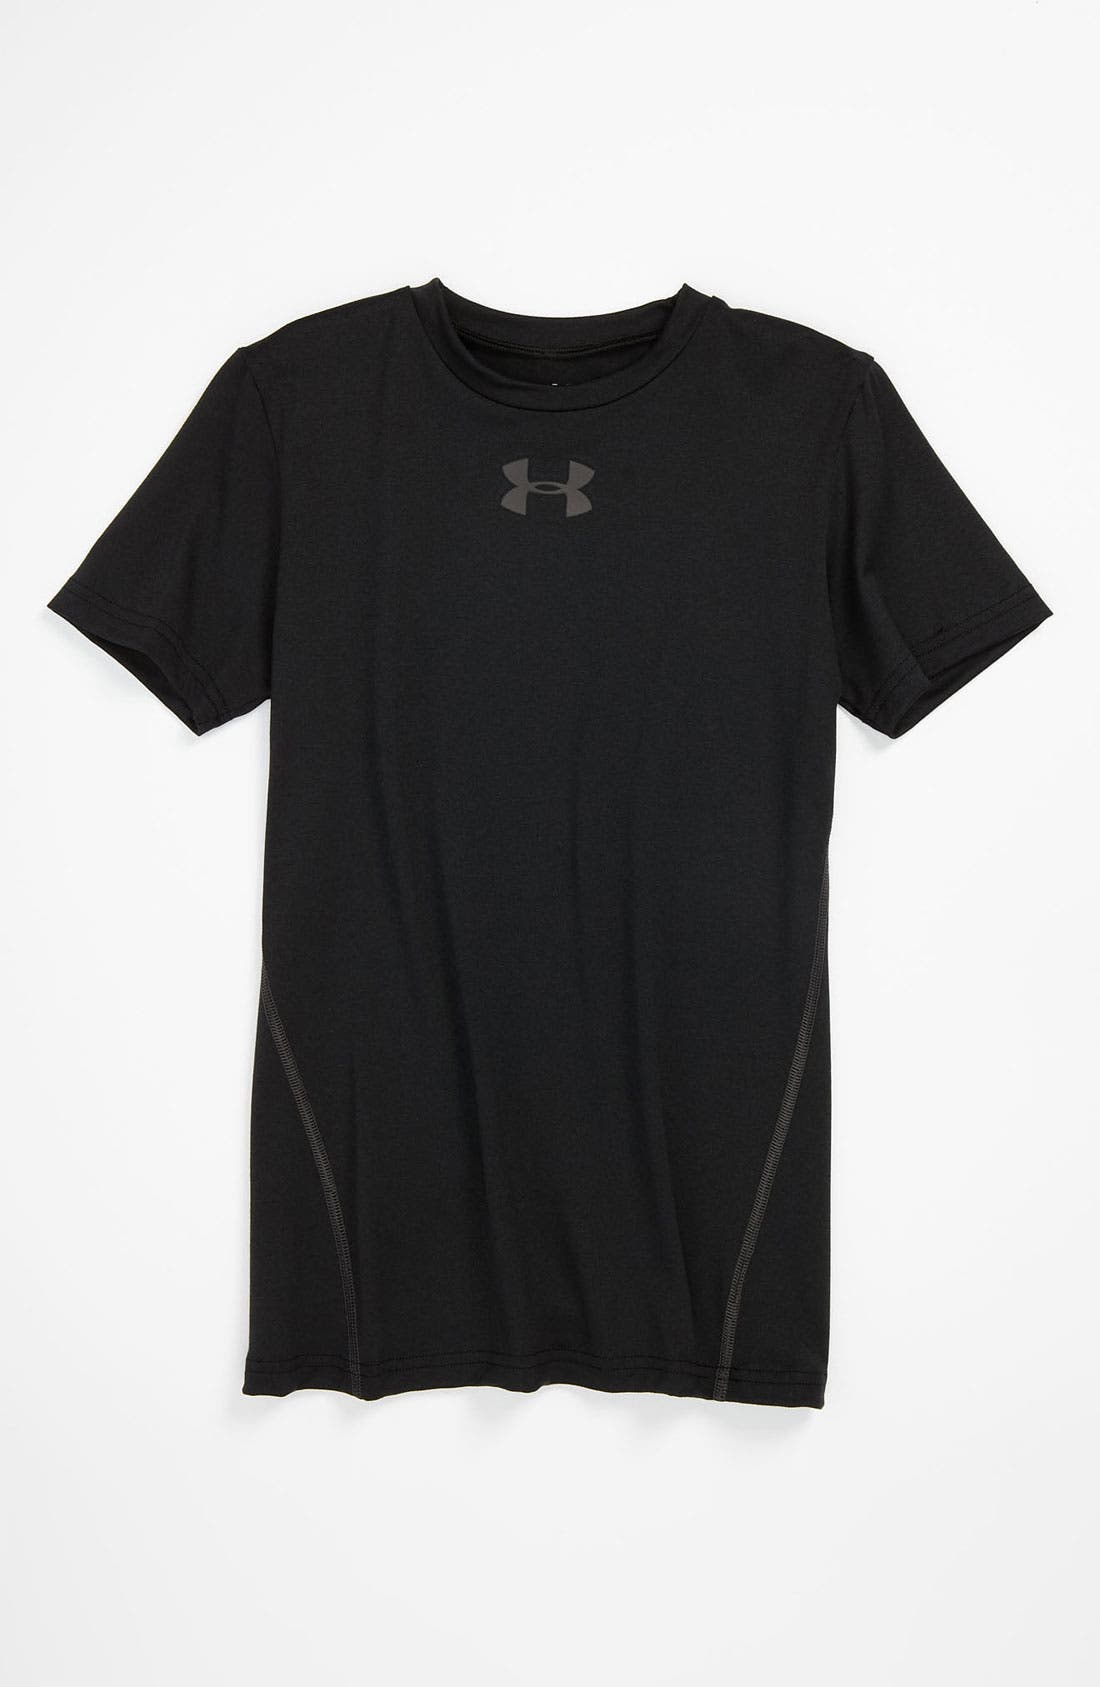 Main Image - Under Armour 'Touch' Fitted T-Shirt (Big Boys)